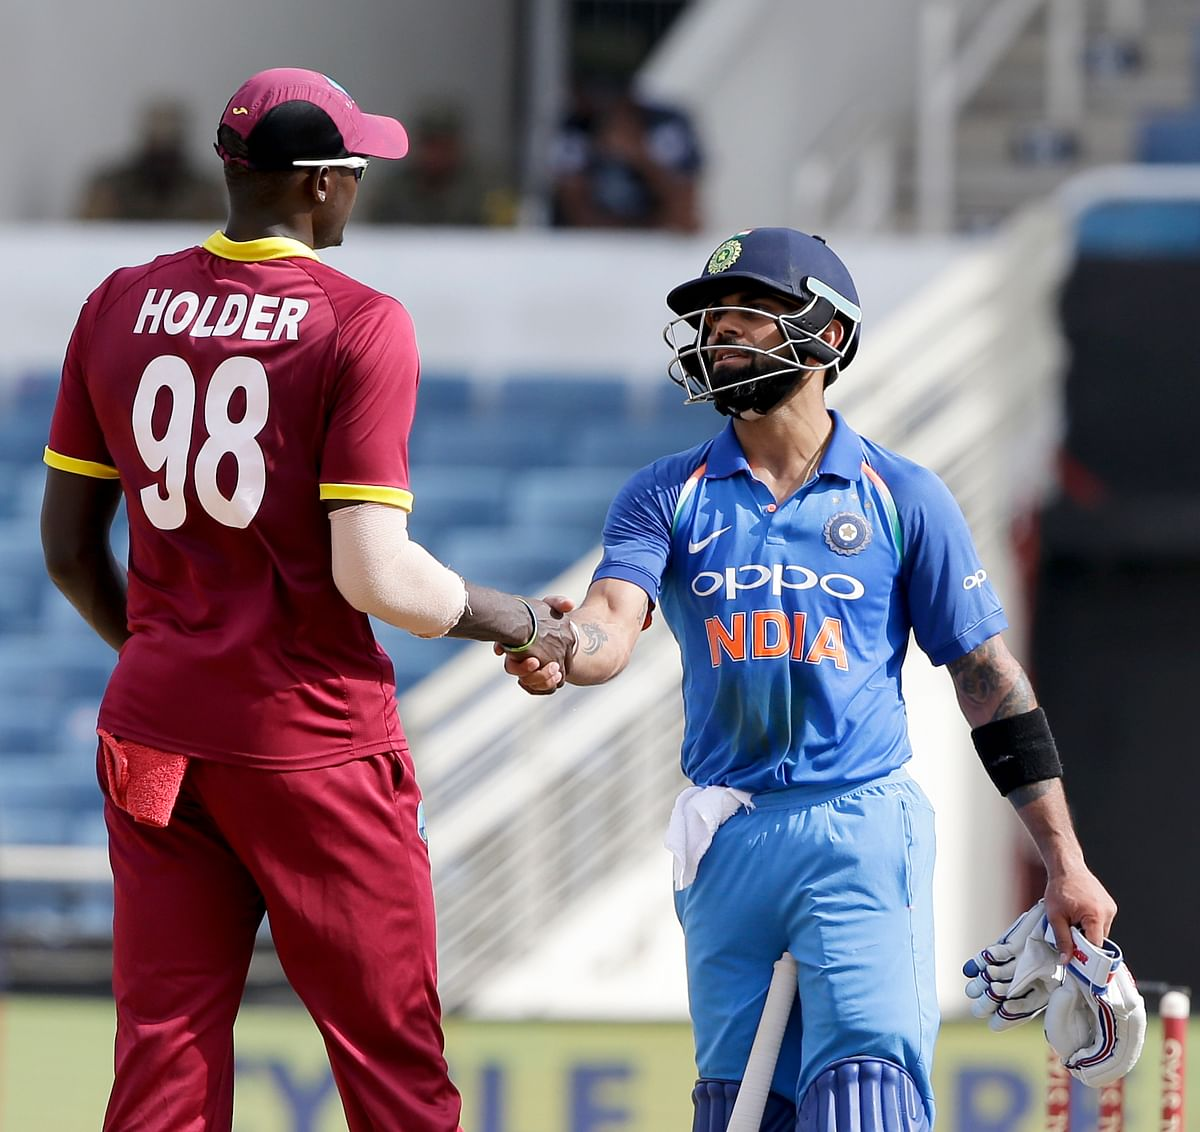 West Indies' captain Jason Holder and India's captain Virat Kohli shake hands after India won  their fifth ODI at the Sabina Park by 8 wickets.